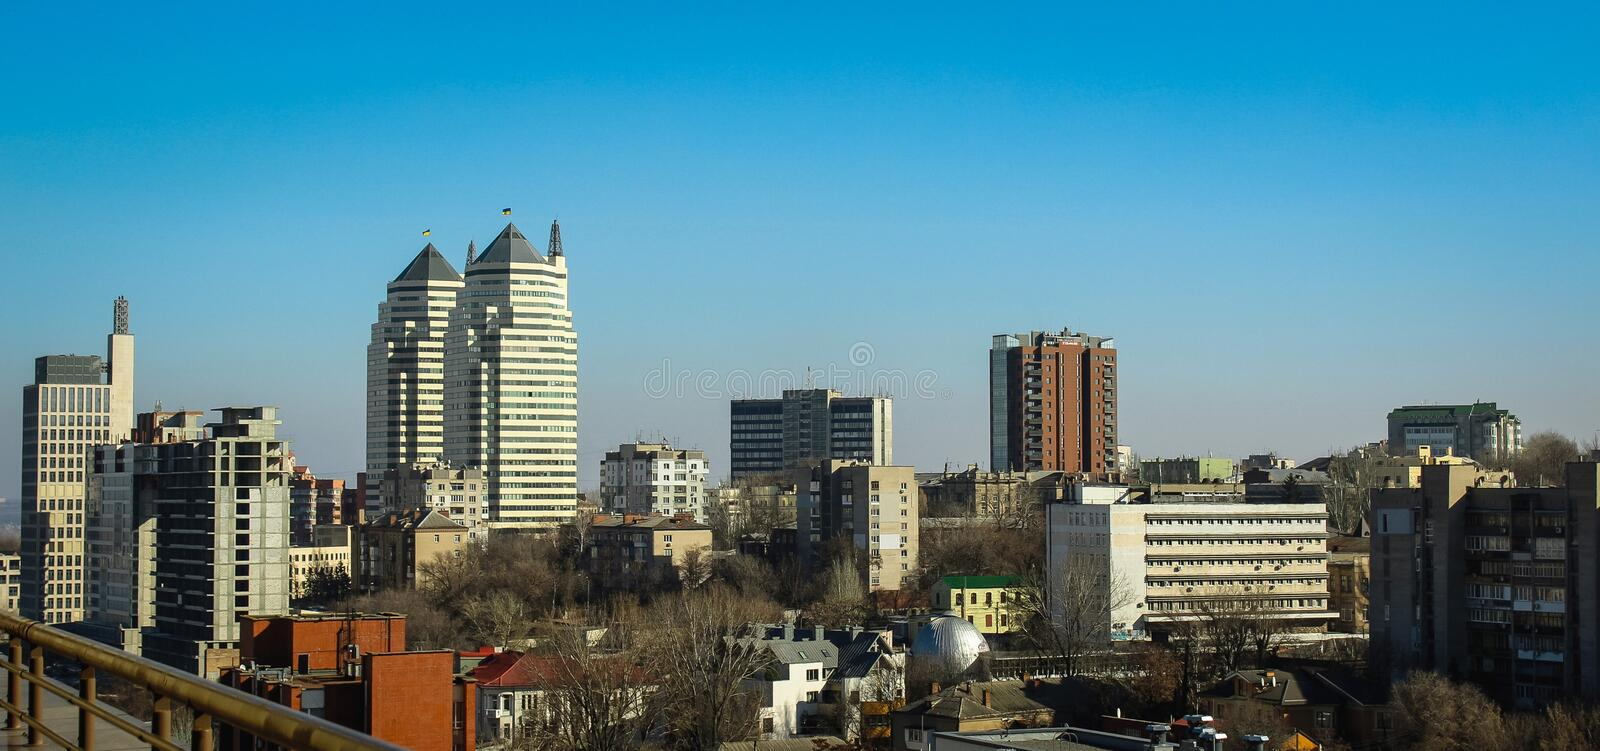 Dnipropetrovsk images stock